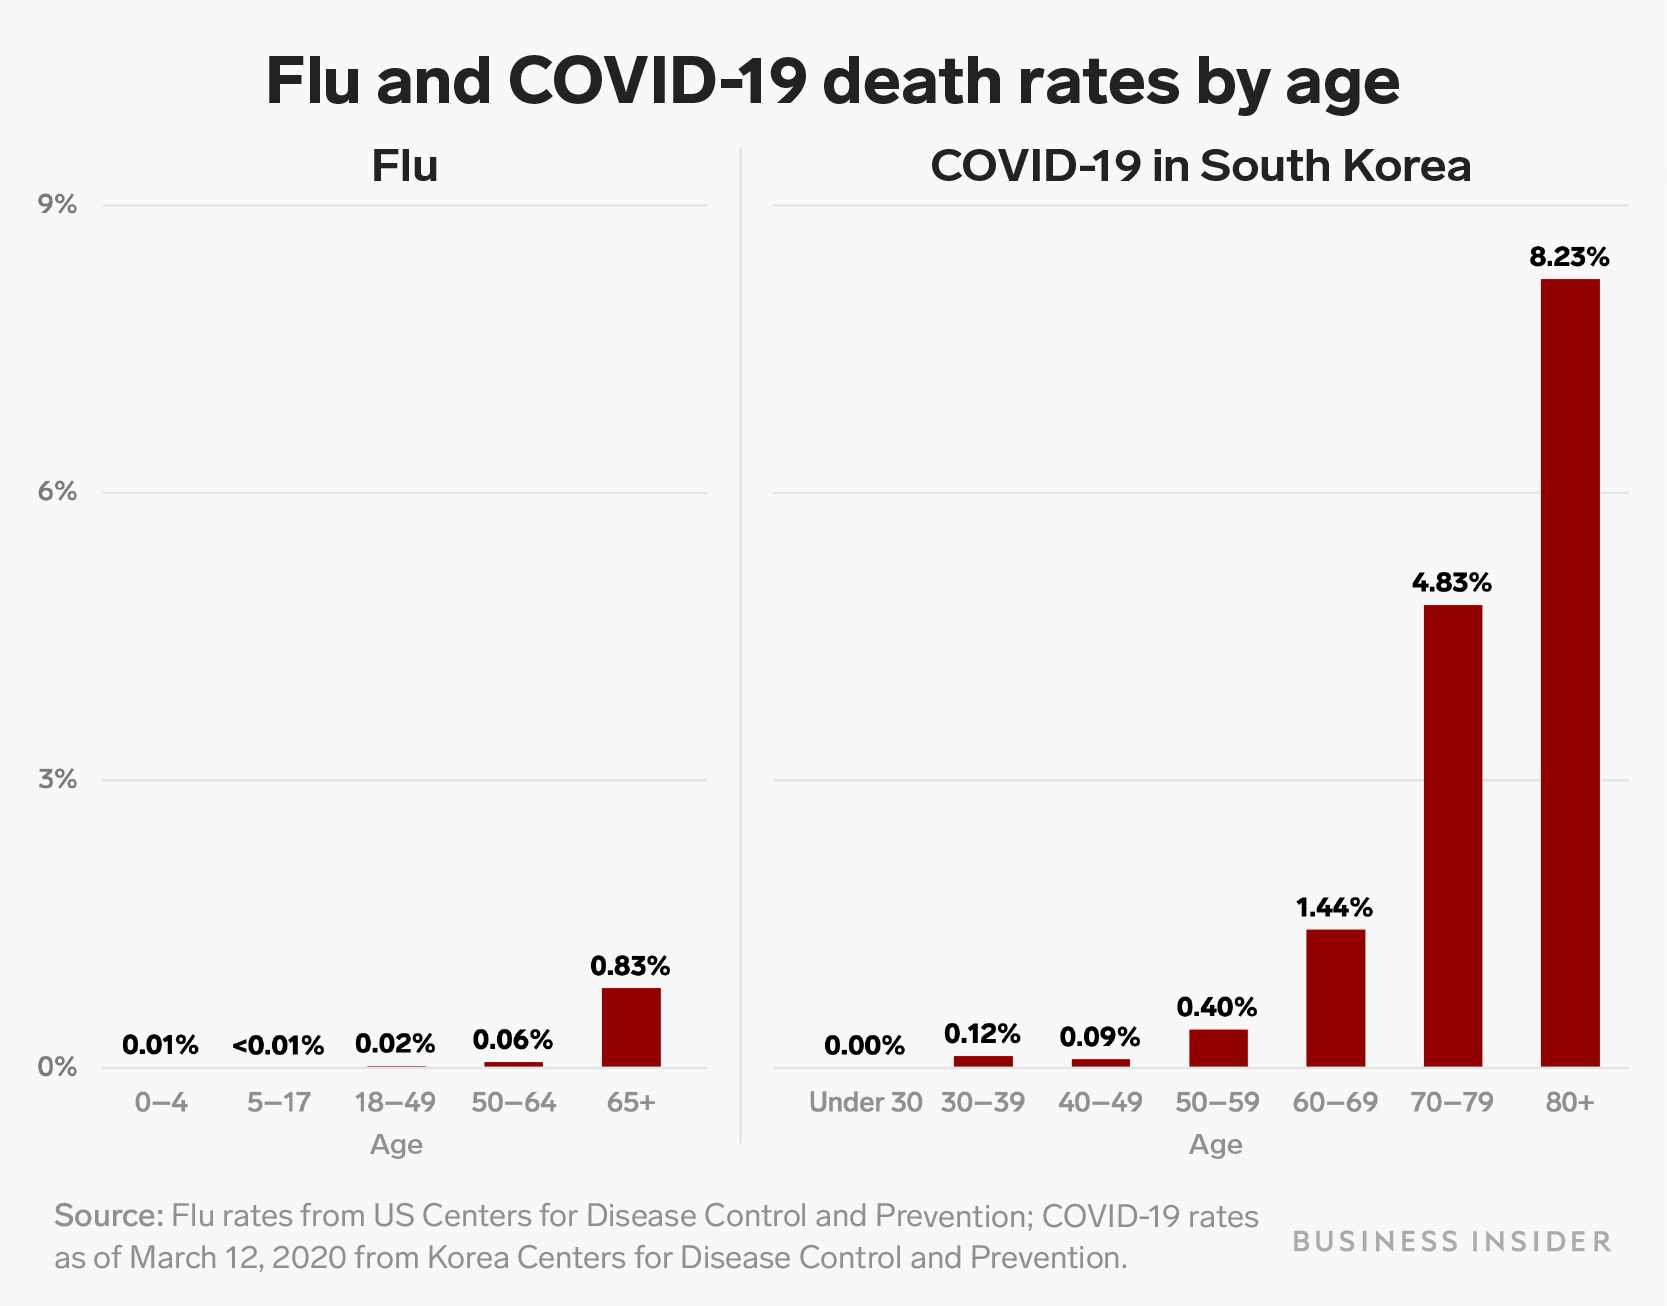 How coronavirus death rate in South Korea compares to flu ...